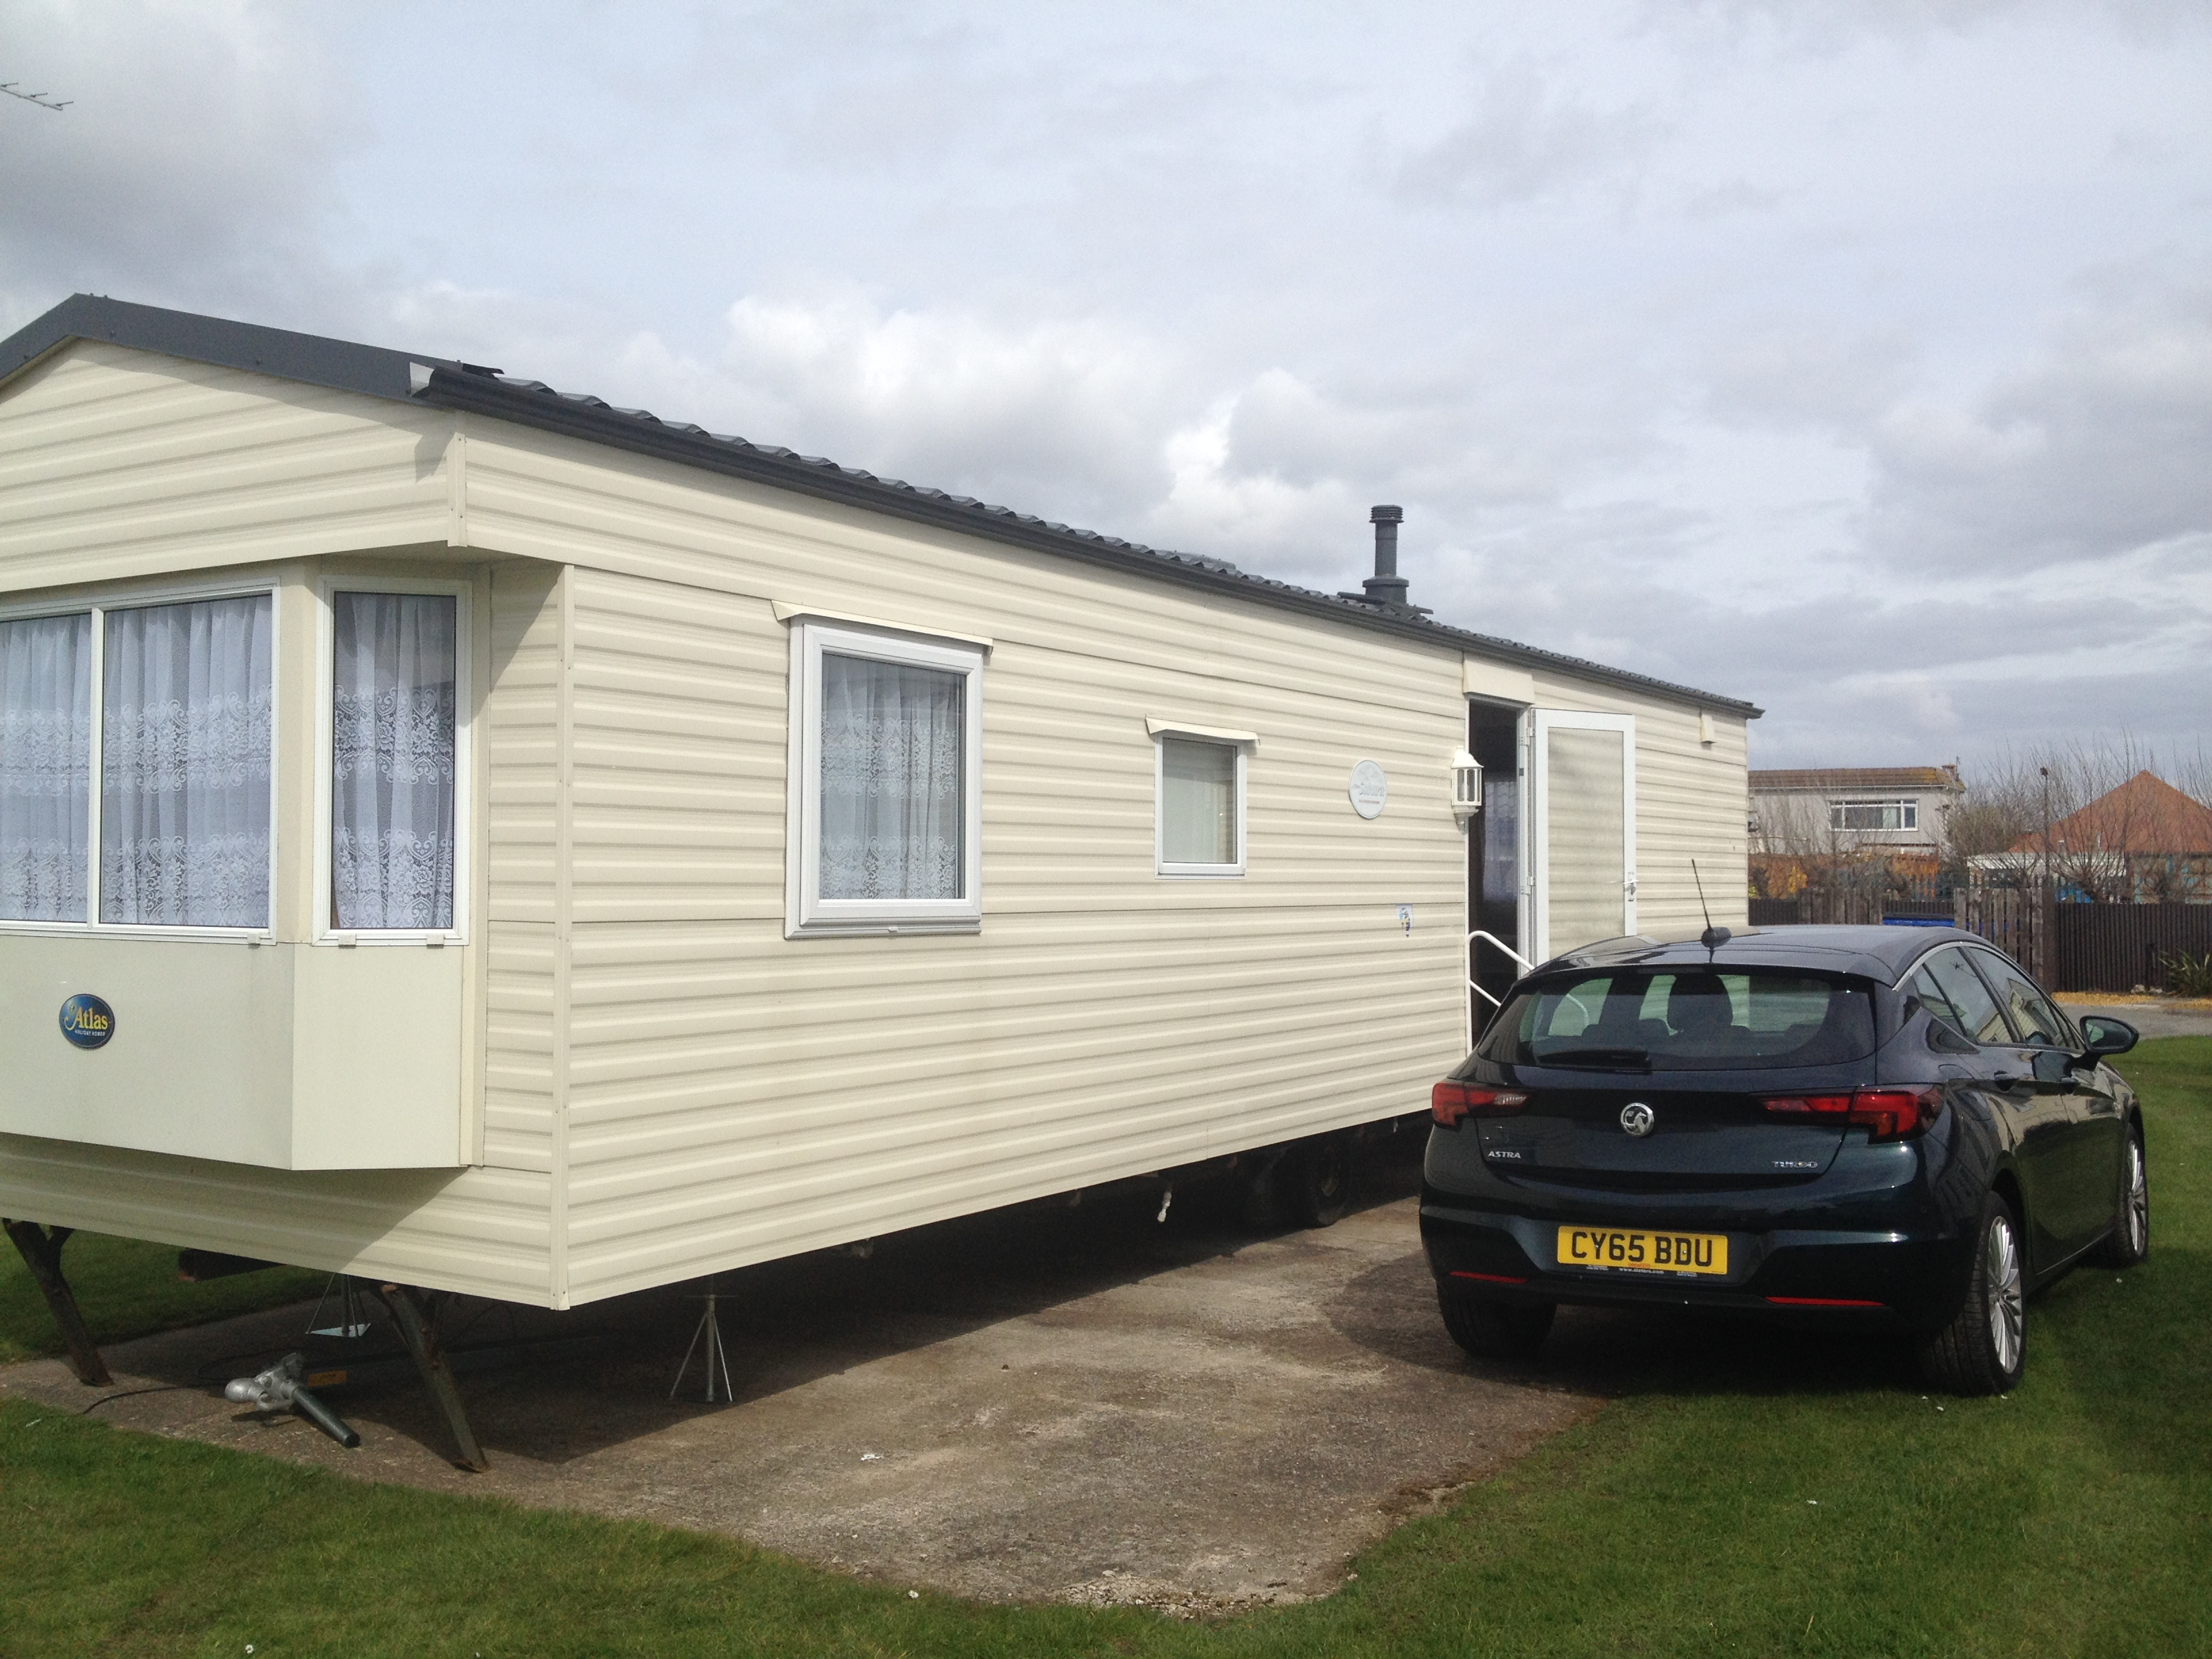 *054* Robin Hood Holiday Park, Rhyl, North Wales